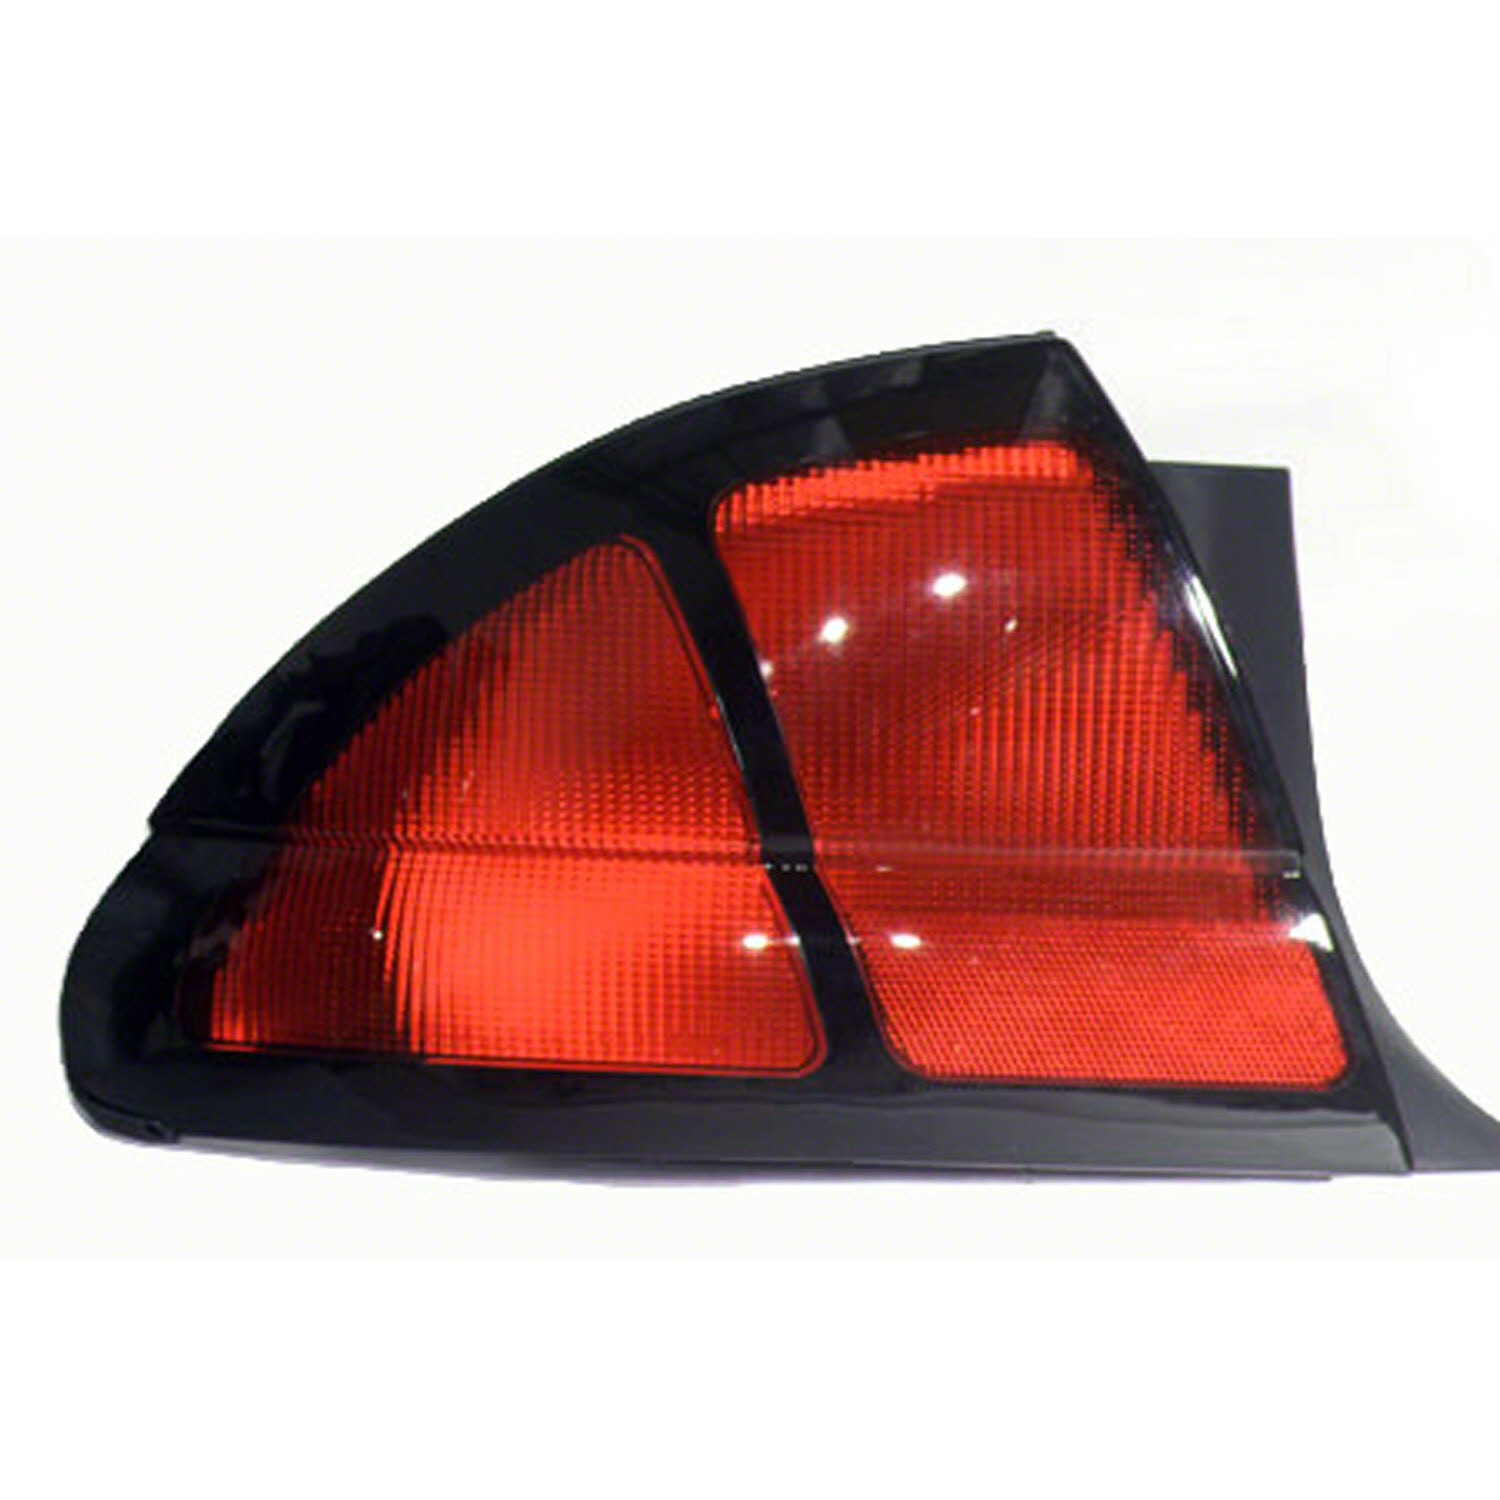 New Driver Side Left Tail Lamp Assembly 5976387